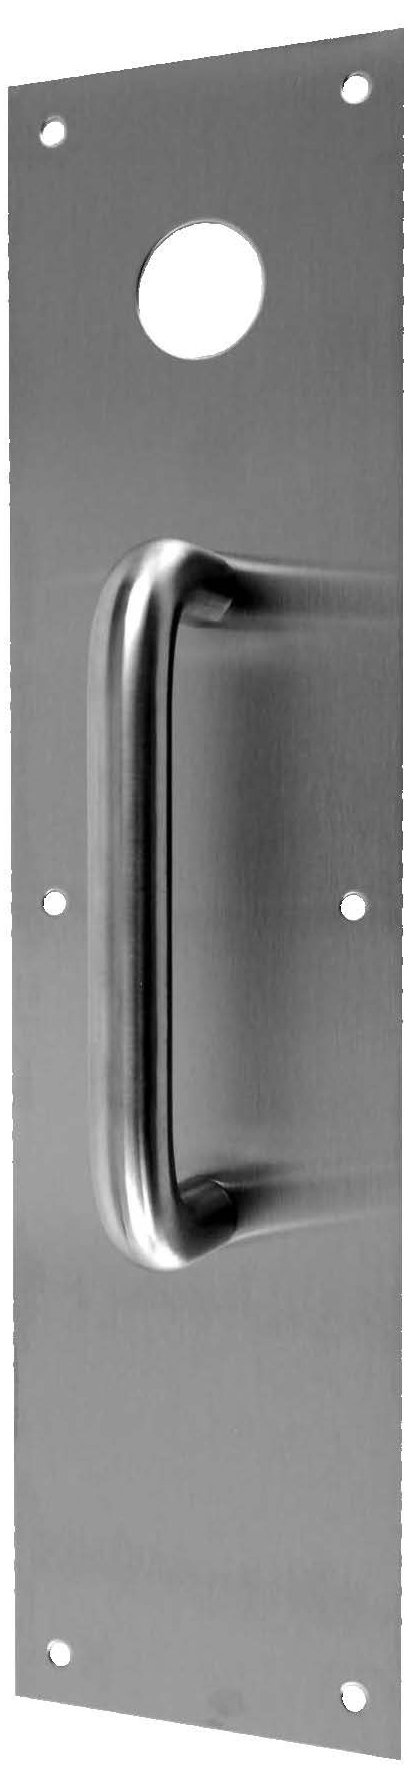 Don-Jo CFK7115 Stainless Steel Push and Pull Plate with Holes, Satin Stainless Steel Finish, 4'' Width x 16'' Height